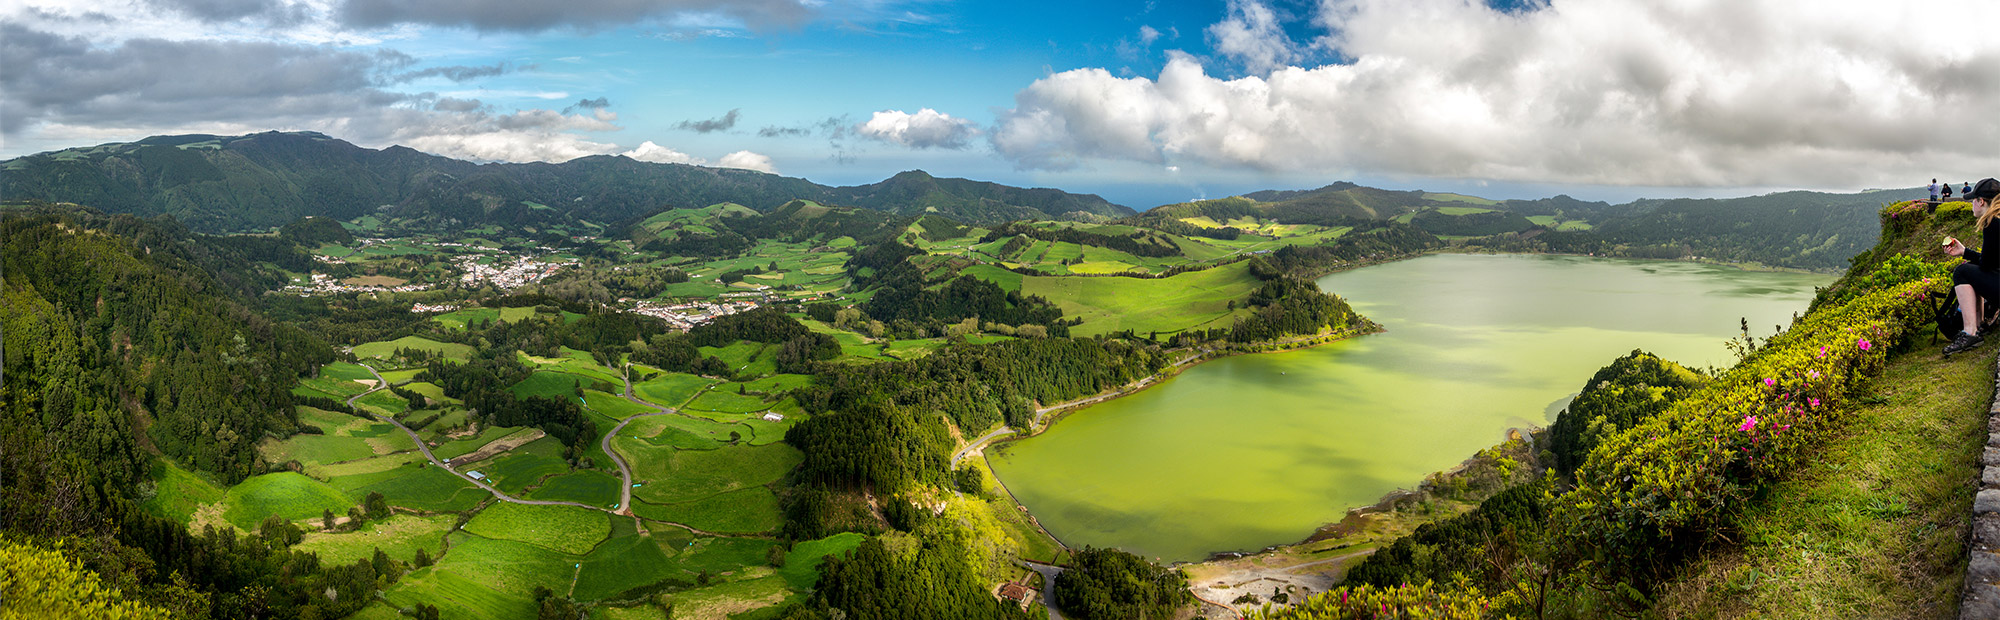 Van Tour - Furnas